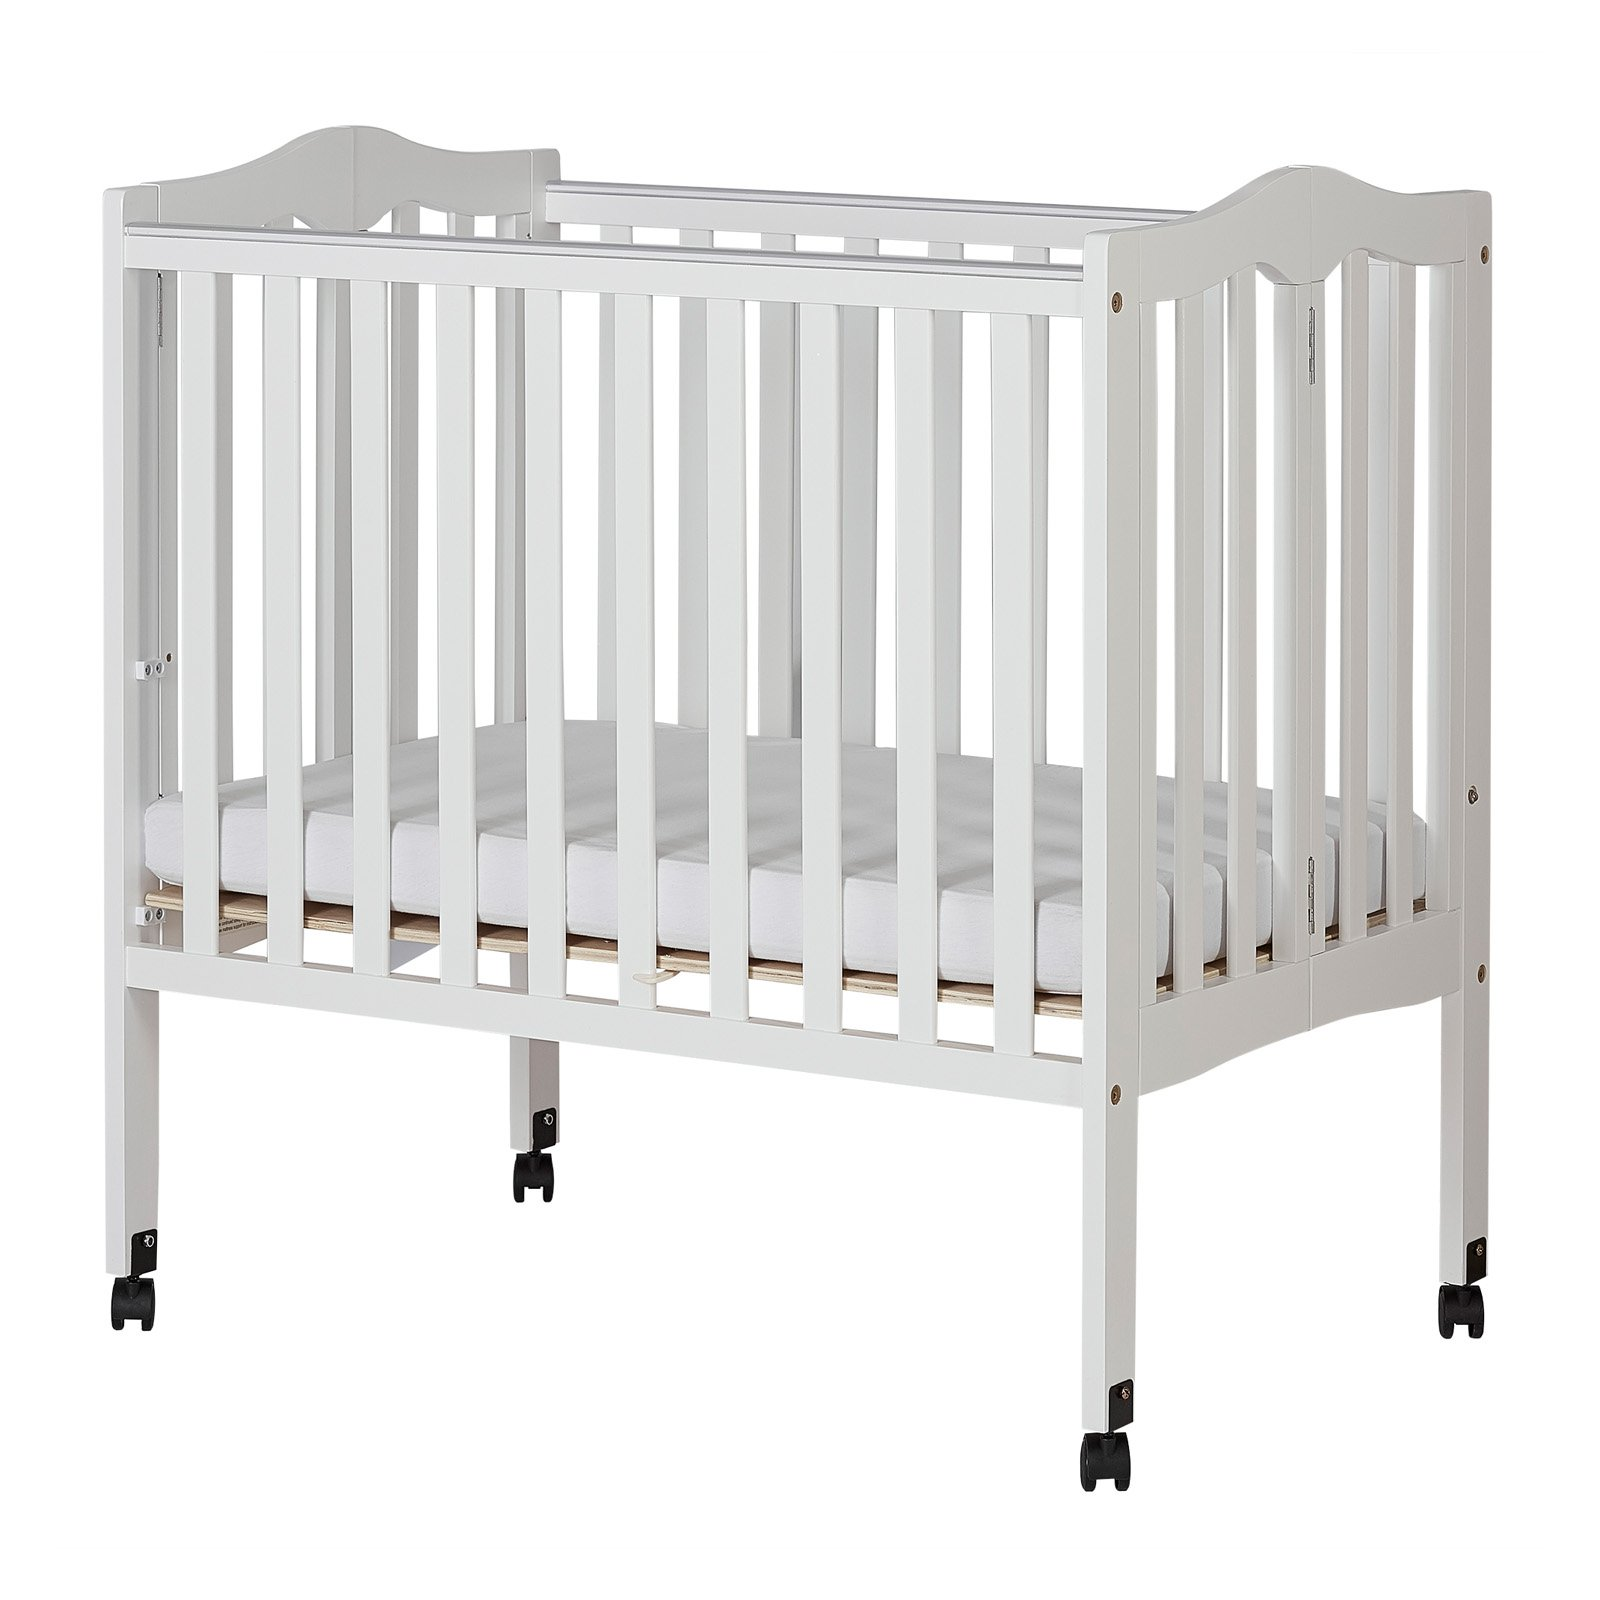 Dream On Me 2 In 1 Lightweight Folding Portable Crib Products In 2019 Portable Crib Cribs Convertible Crib